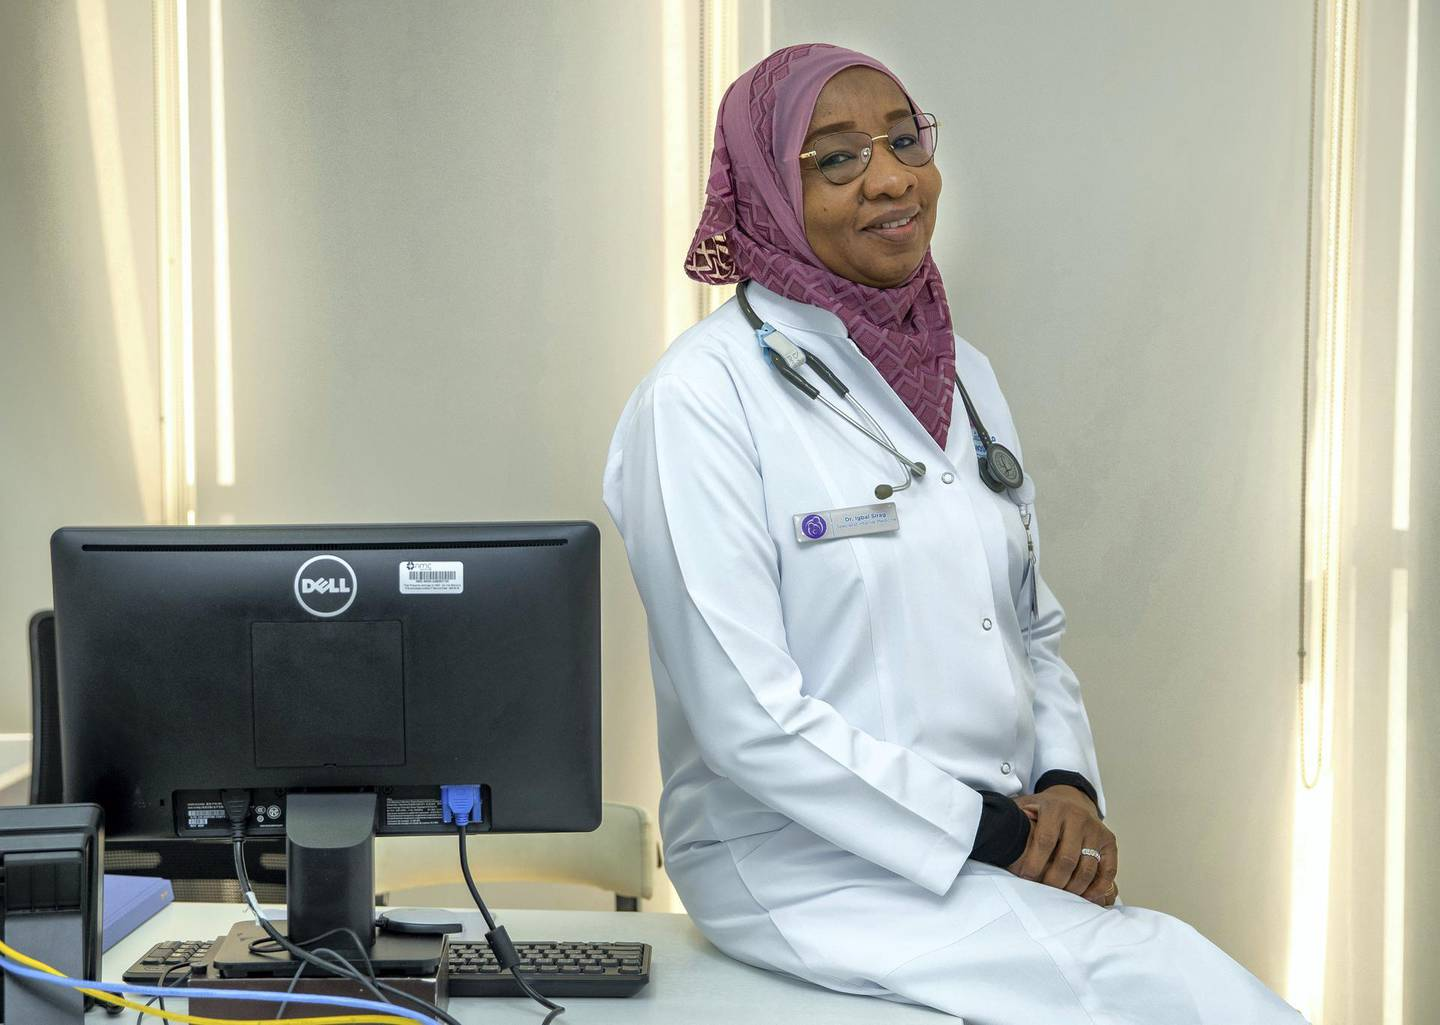 Abu Dhabi, United Arab Emirates, March 23, 2021.  ICU doctors give their view on what lessons have ben learned and what has changed one year on from Covid. SUBJECT NAME:  Dr. Igbal Mubarak SiragVictor Besa/The NationalSection:  NAReporter:  Nick Webster